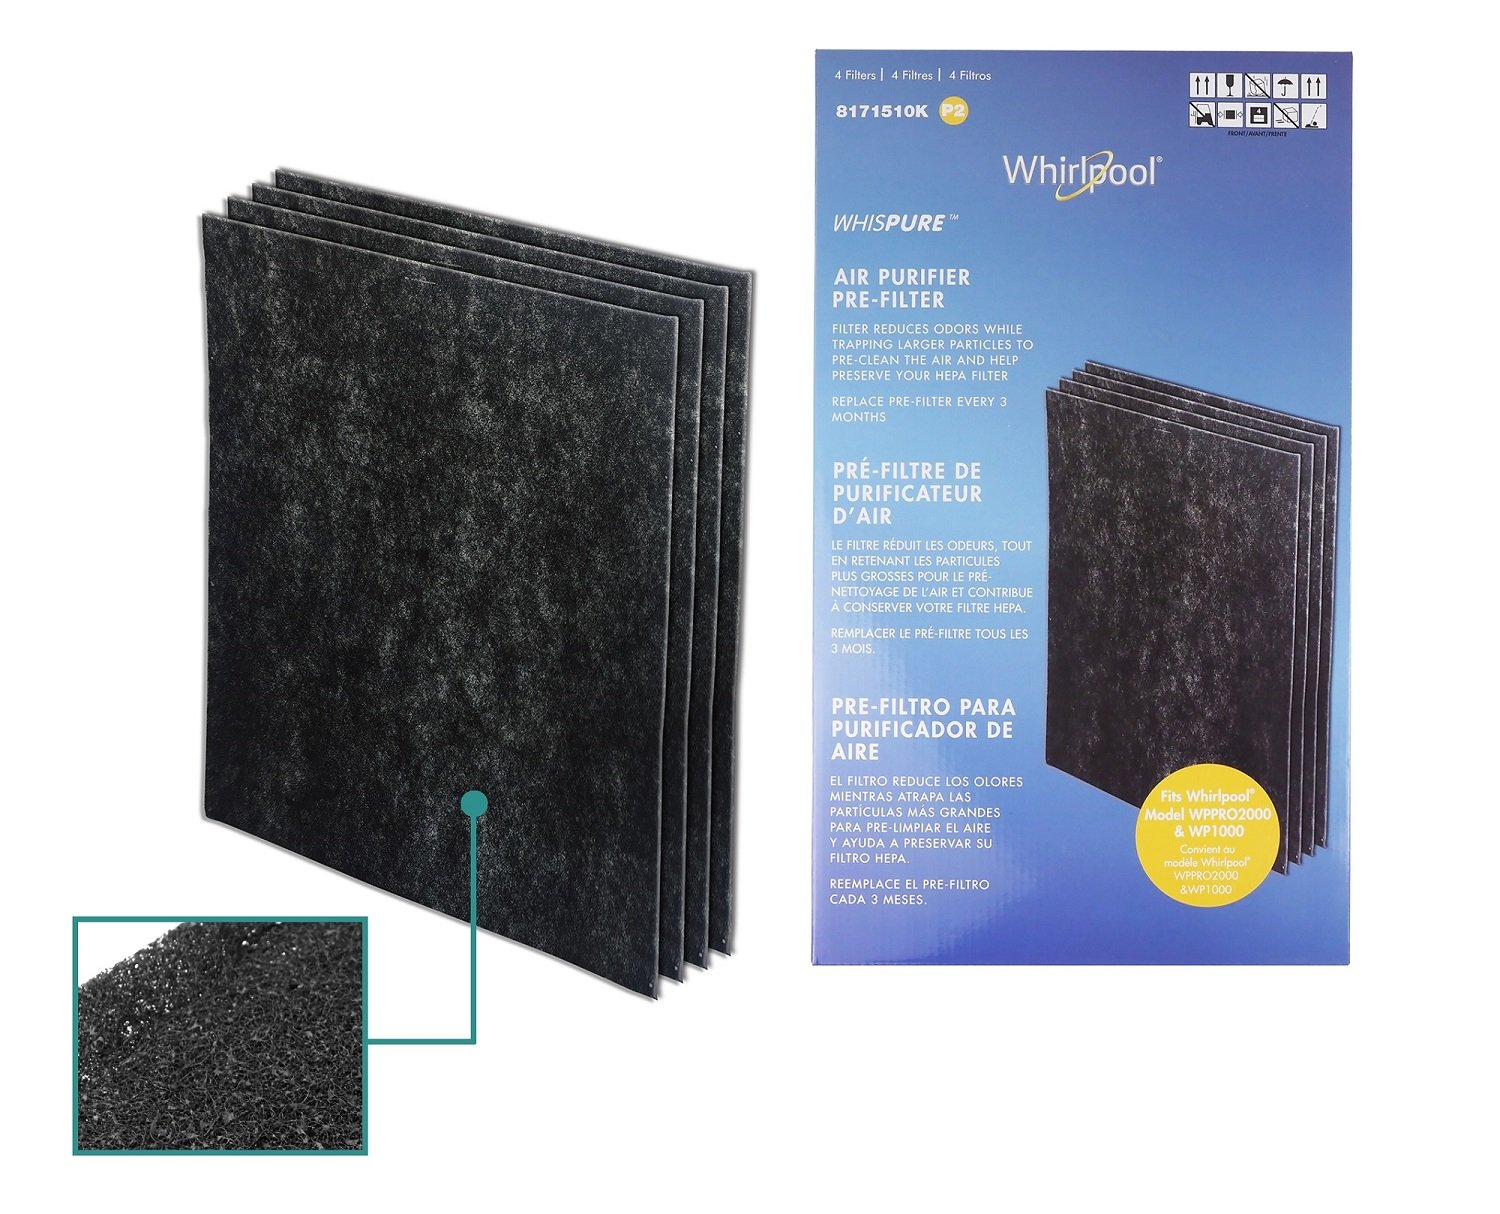 Amazon.com: Whirlpool 8171510K (8171510), 4-Pack (Extra Large), 1-Full Year Supply Charcoal Carbon-Based Pre-Filters, For Air Purifier Model WP1000 and ...